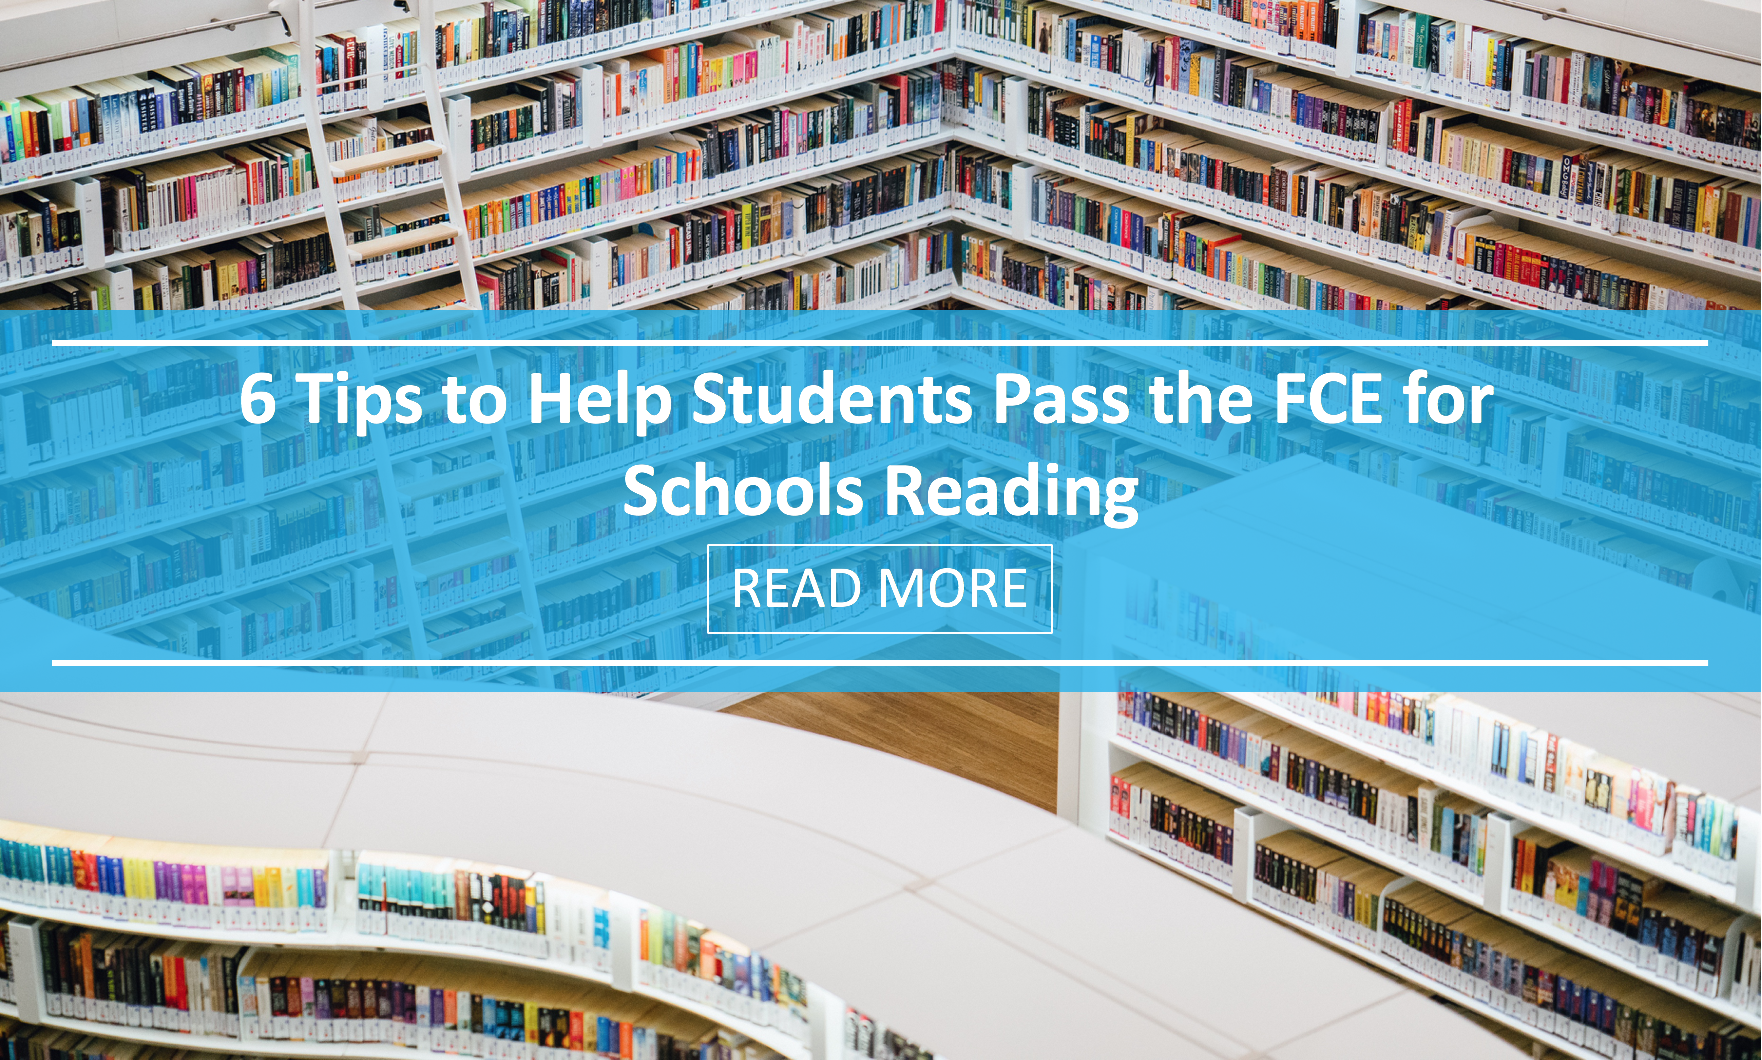 6 Tips to Help Students Pass the FCE for Schools Reading